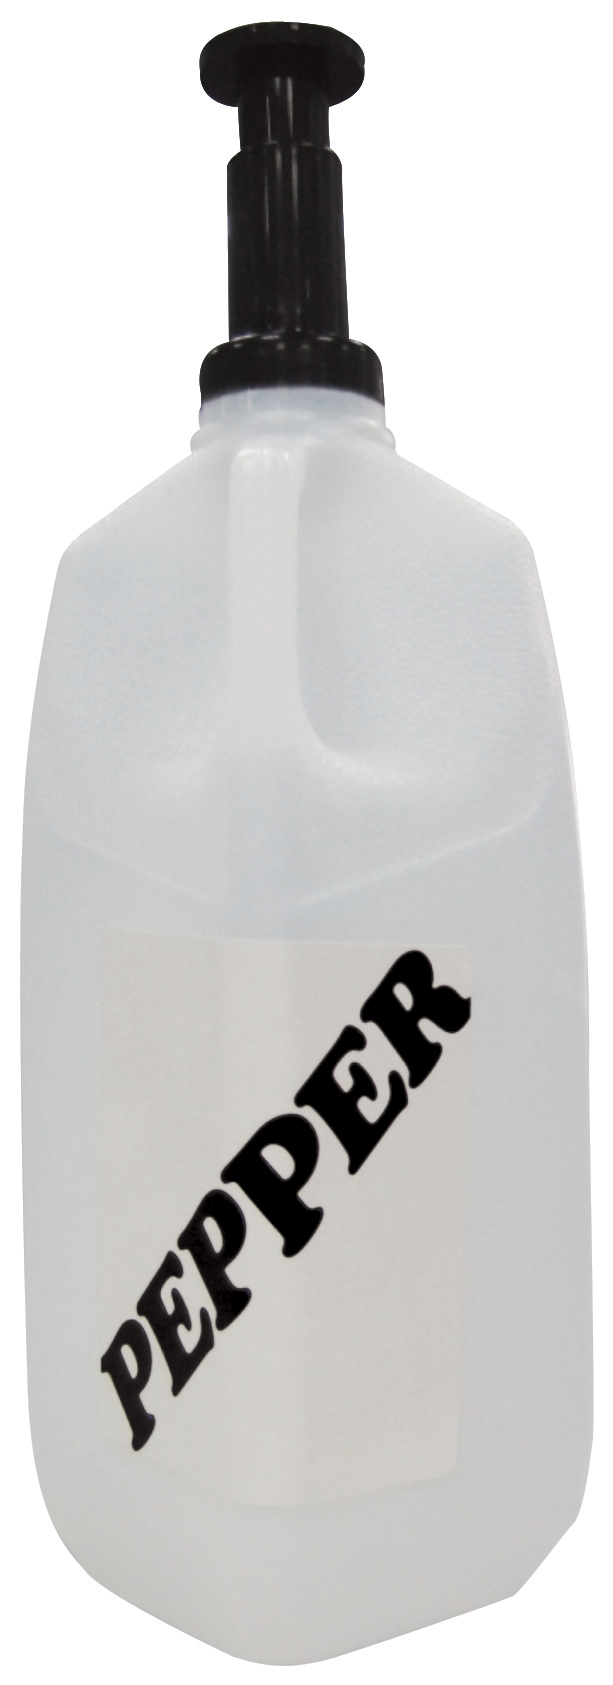 Winco PR-05P salt & pepper refills